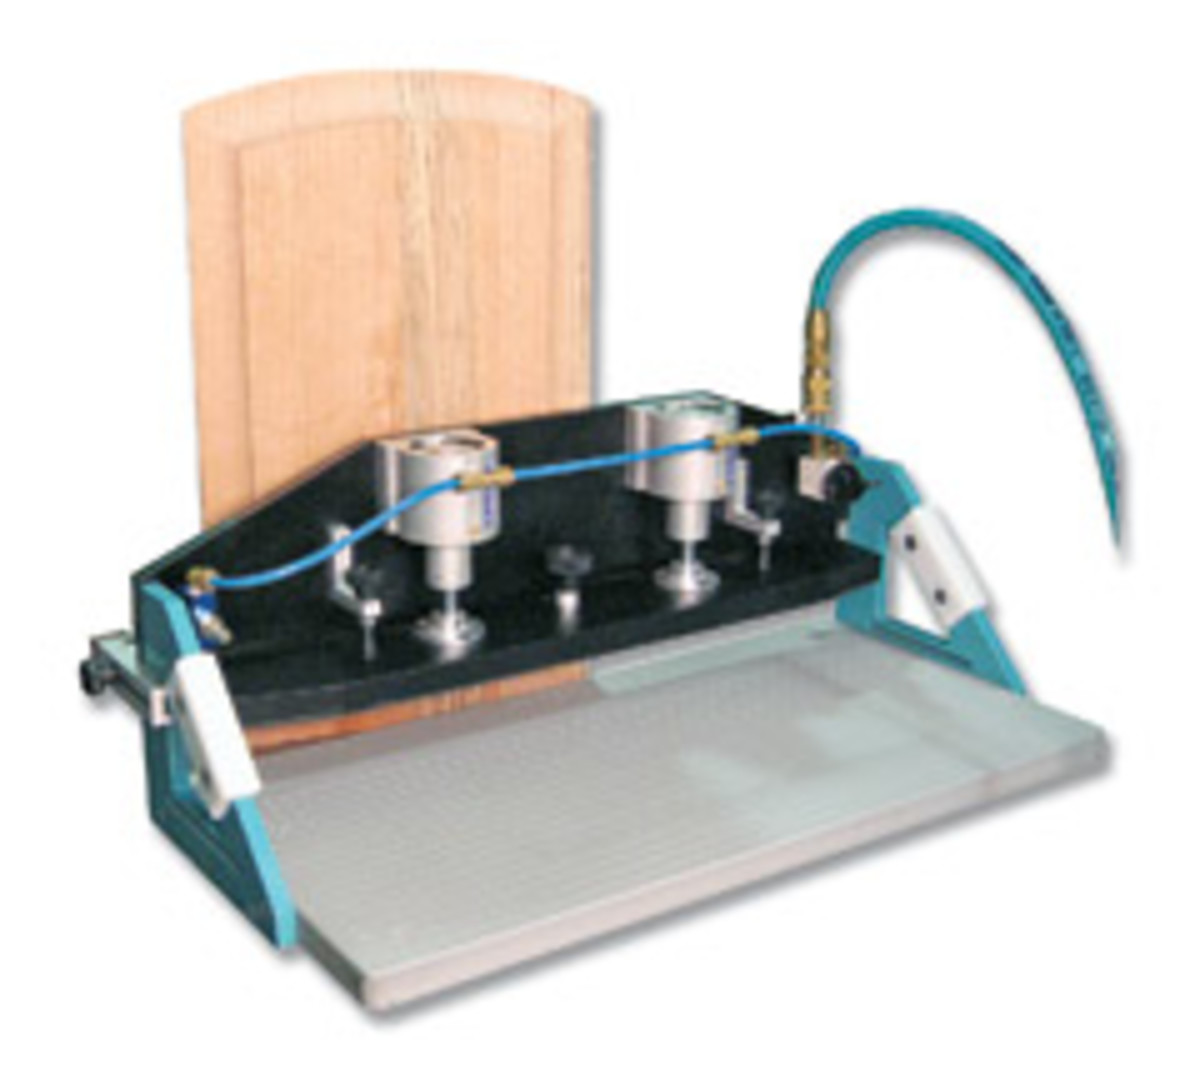 The Archmaster AM-24 jig, available from Extrema Machinery.